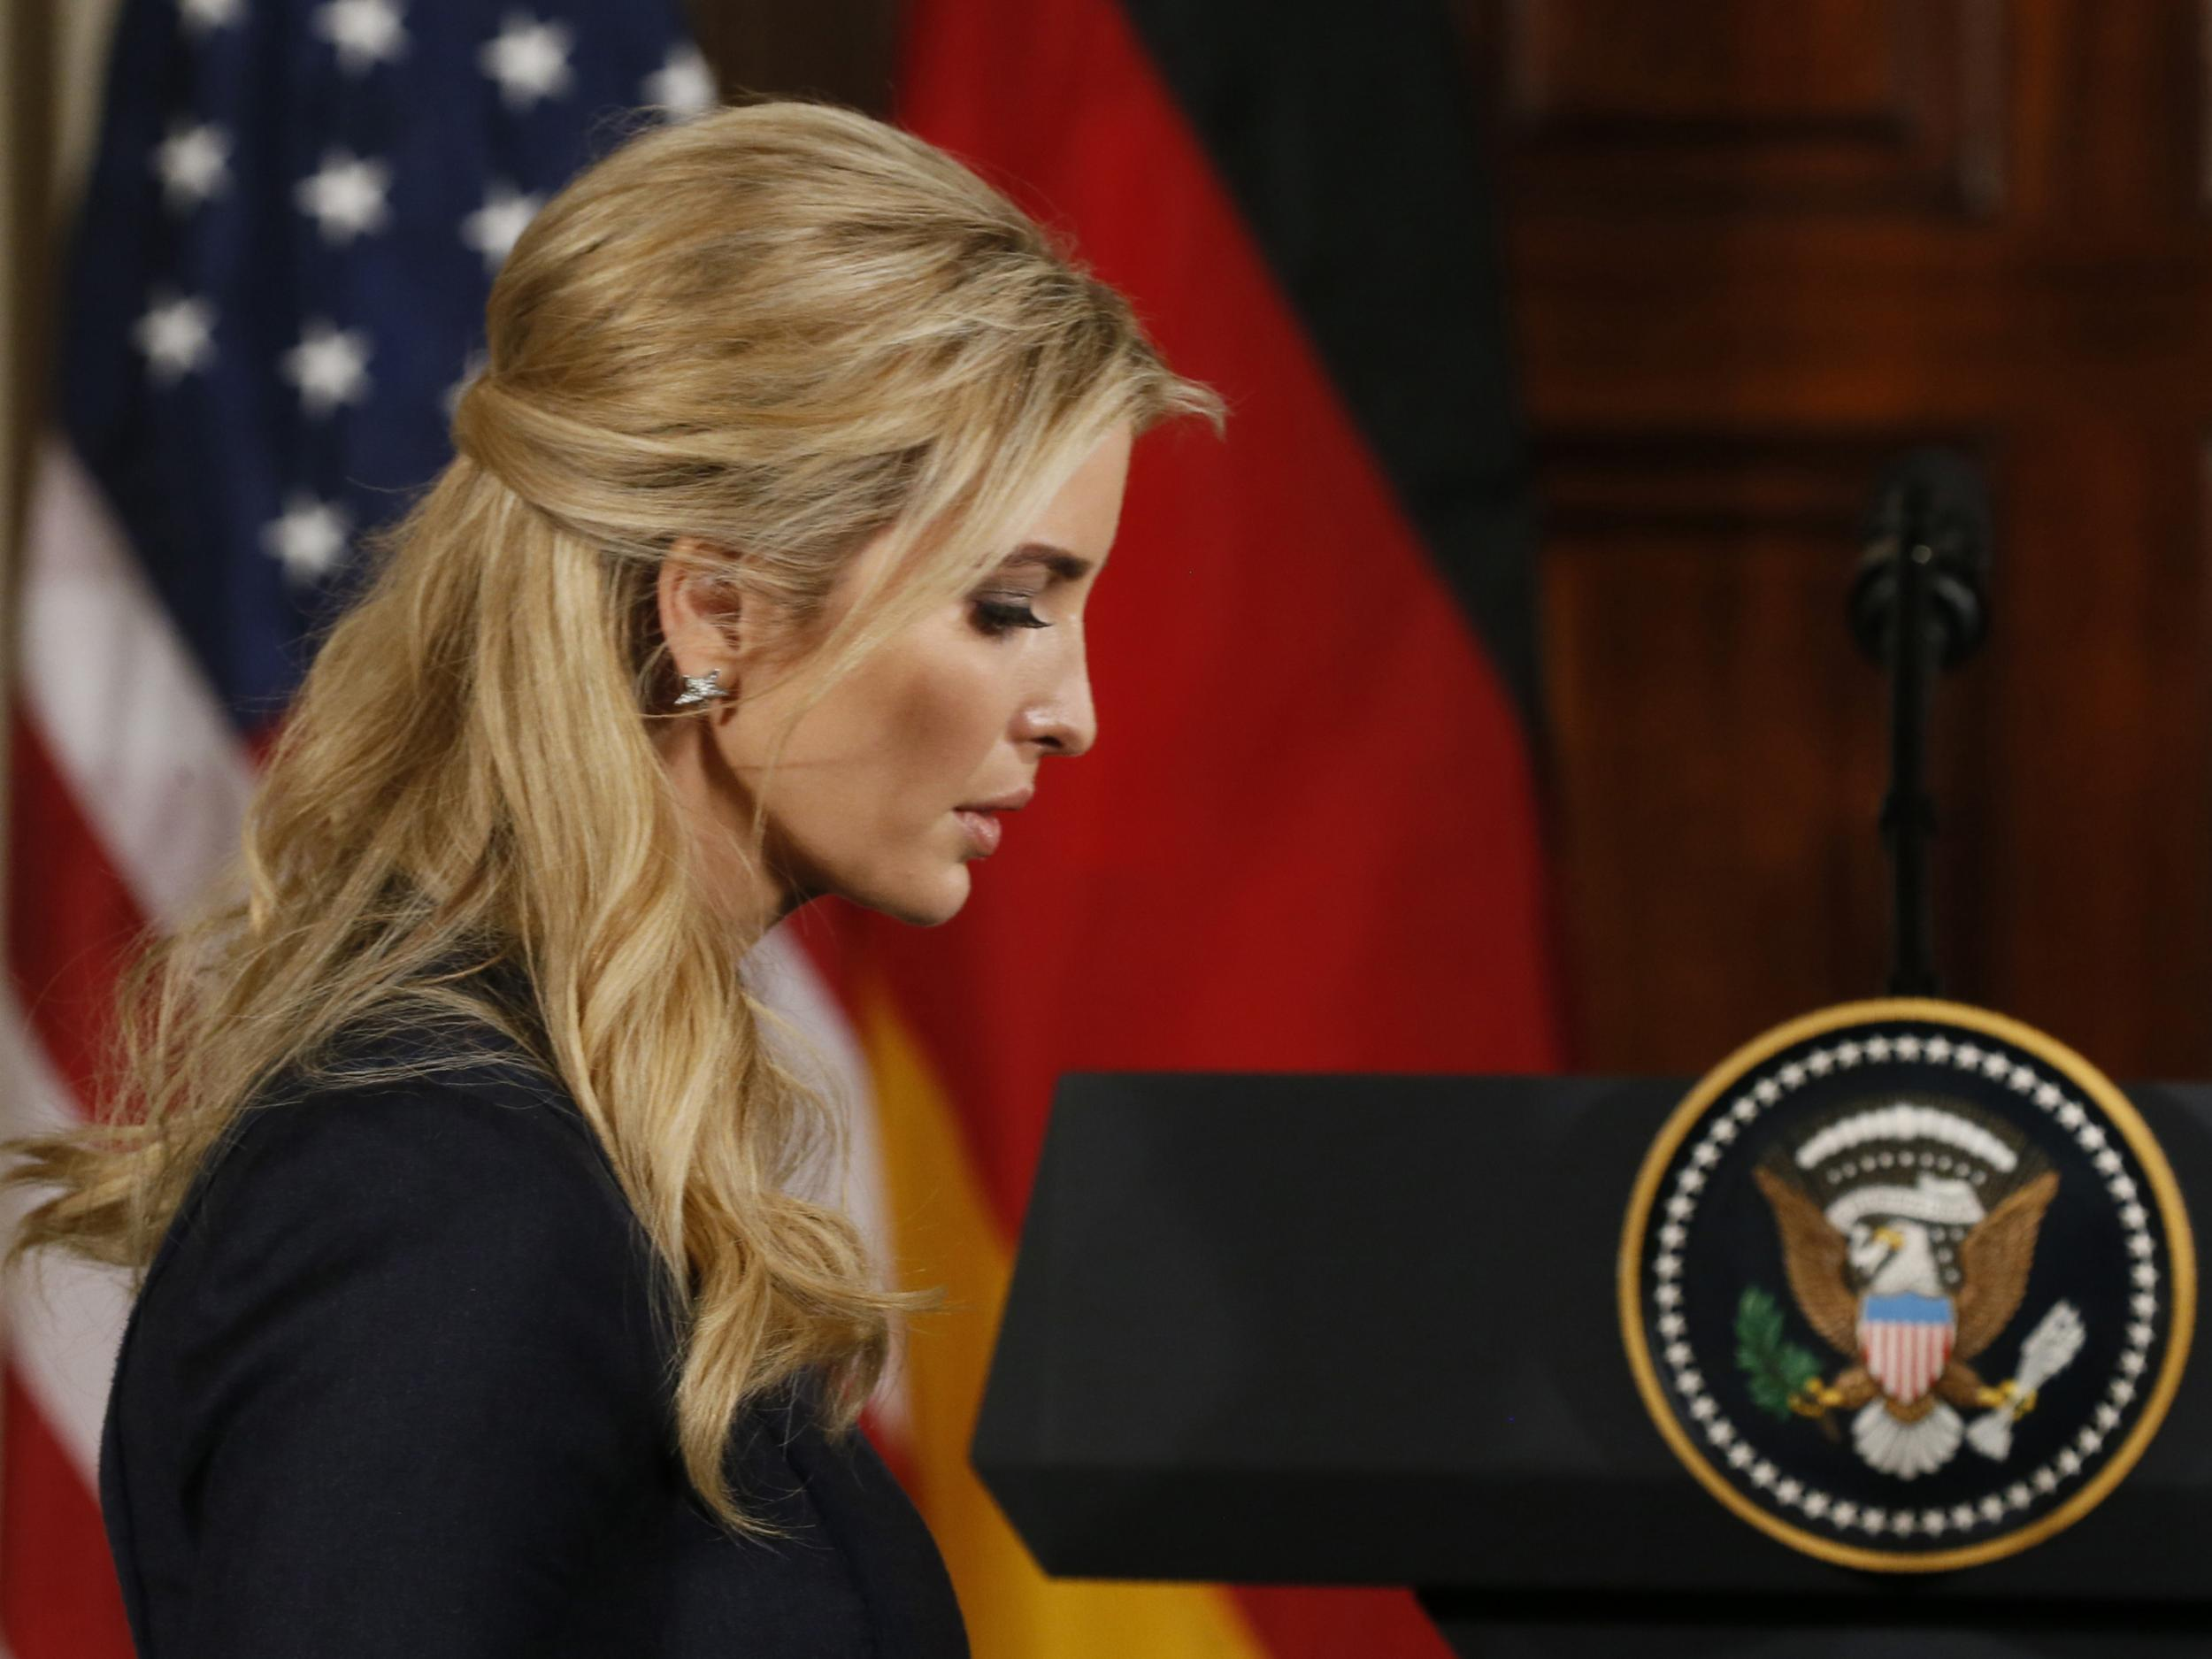 Ivanka Trump has her own office in the White House and people are furious